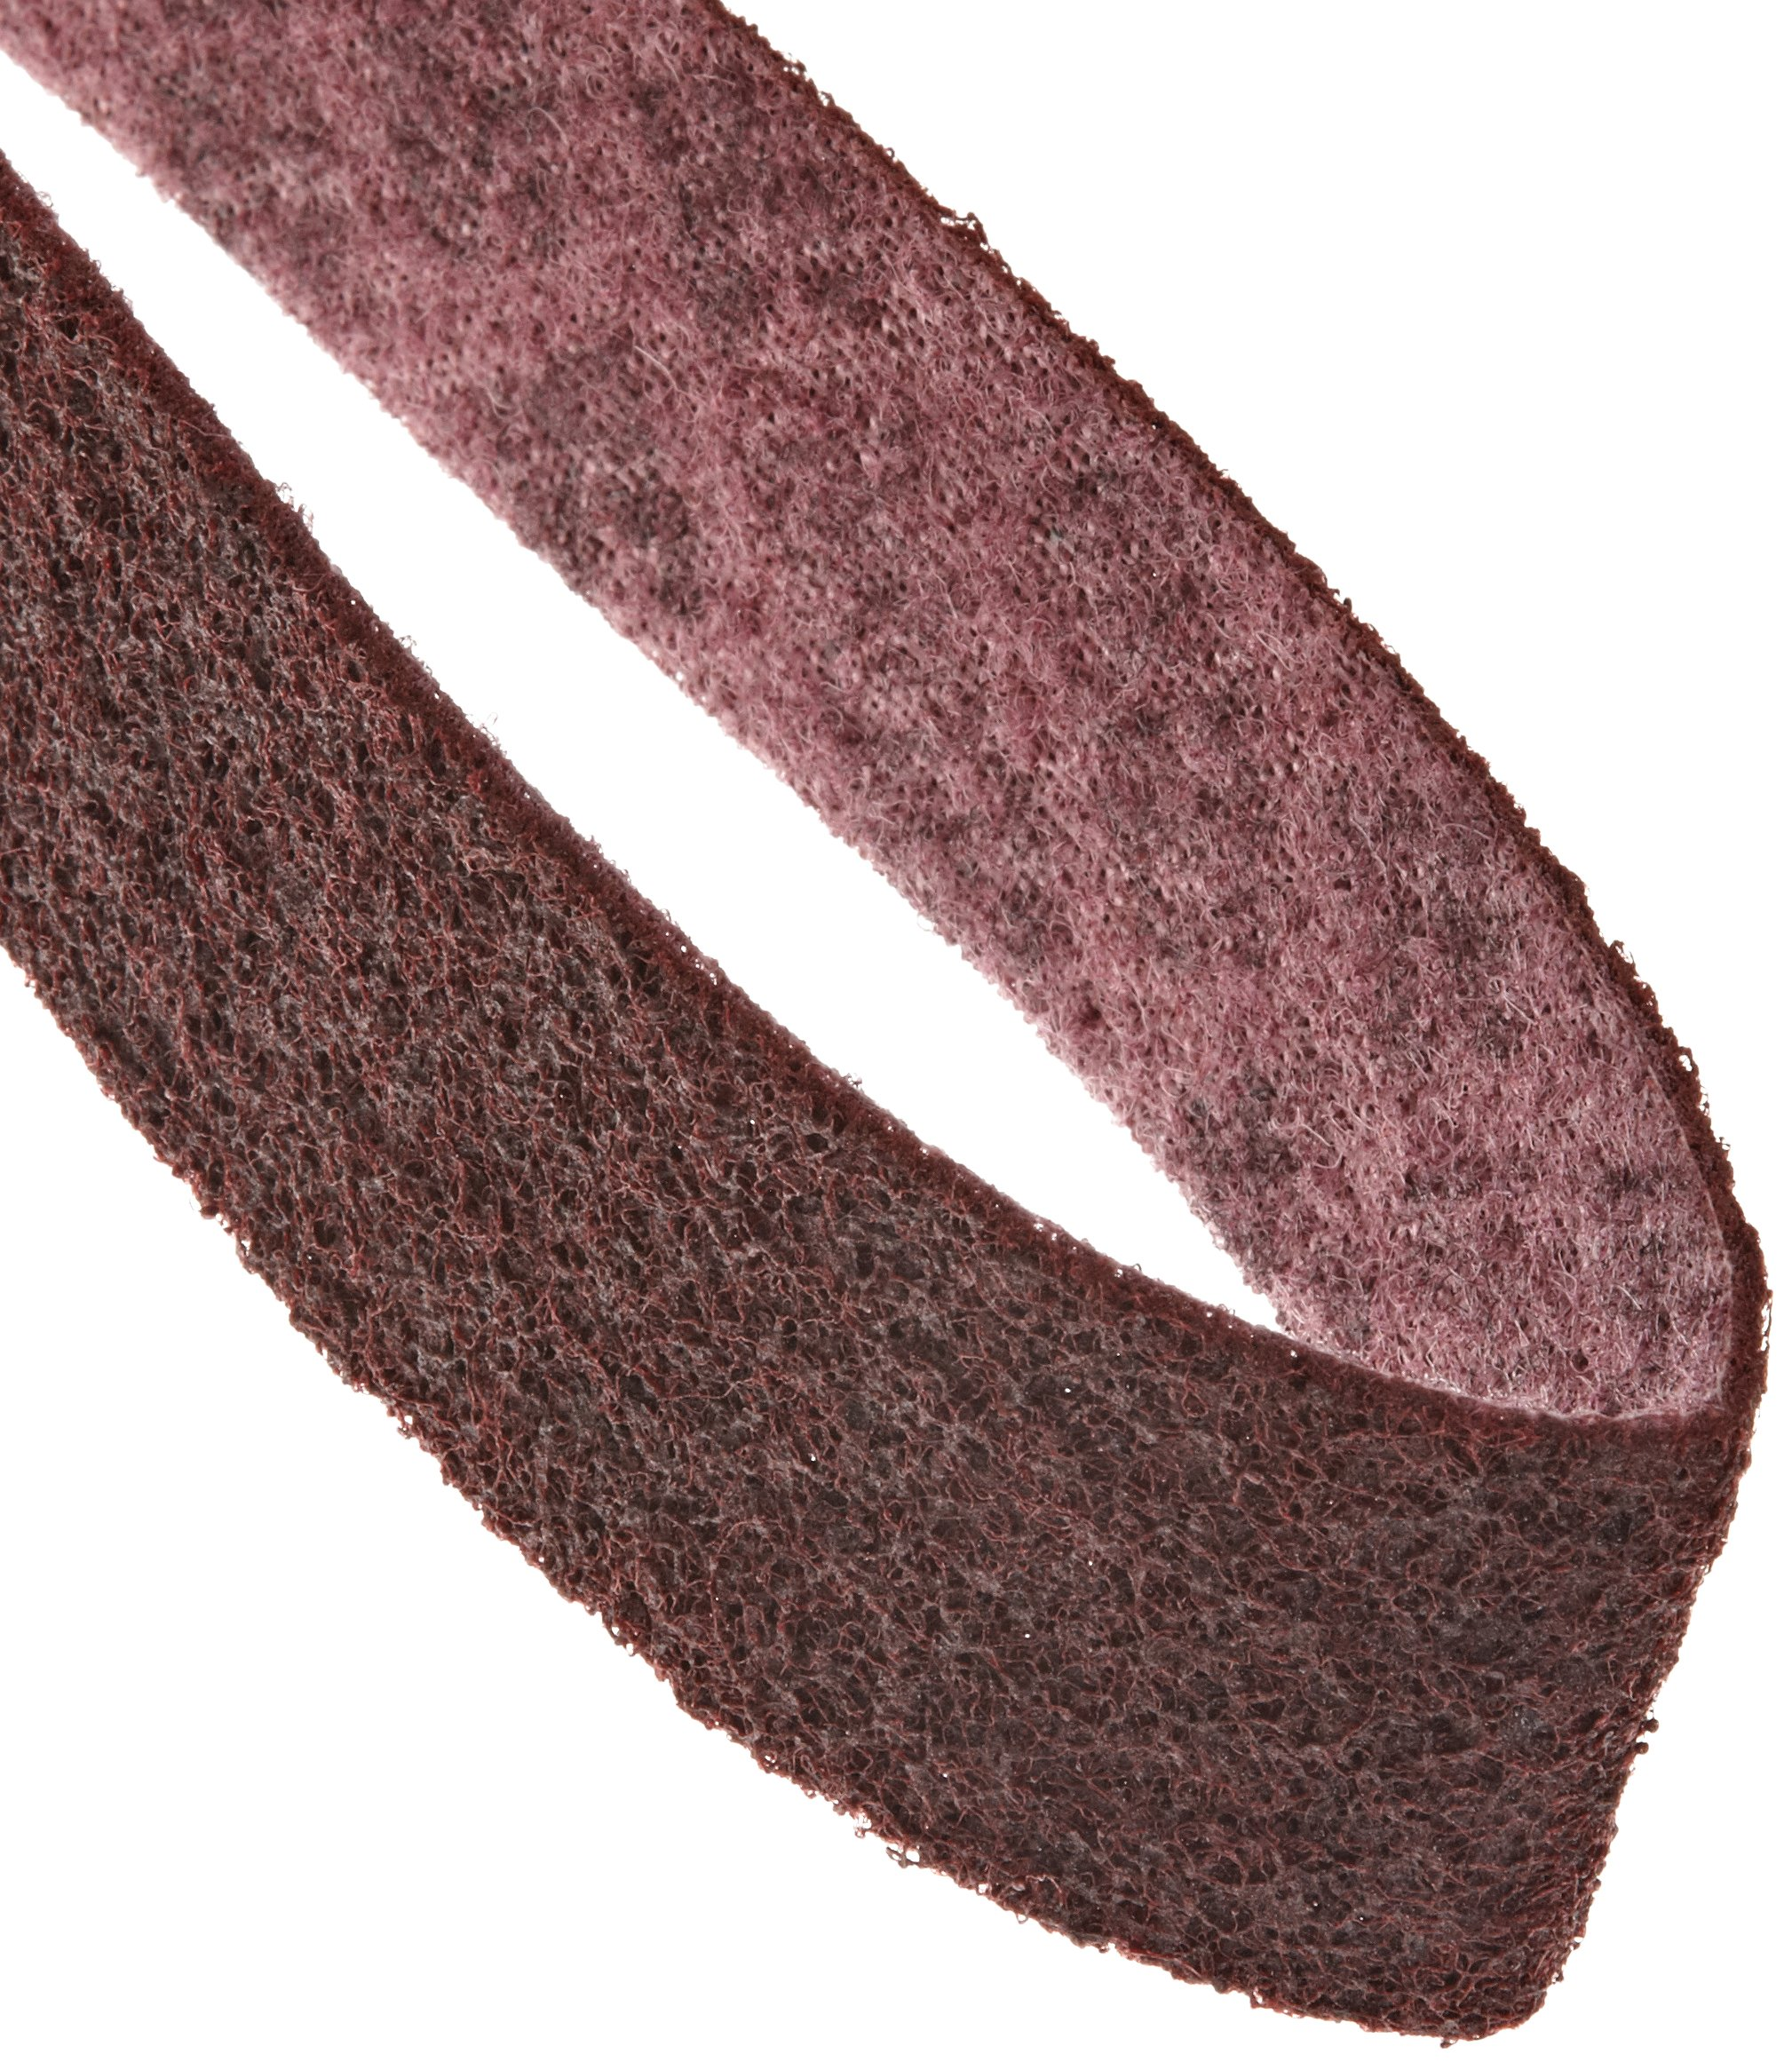 Scotch-Brite  Surface Conditioning Belt, 72'' Length x 2'' Width, Medium, Maroon (Pack of 1)